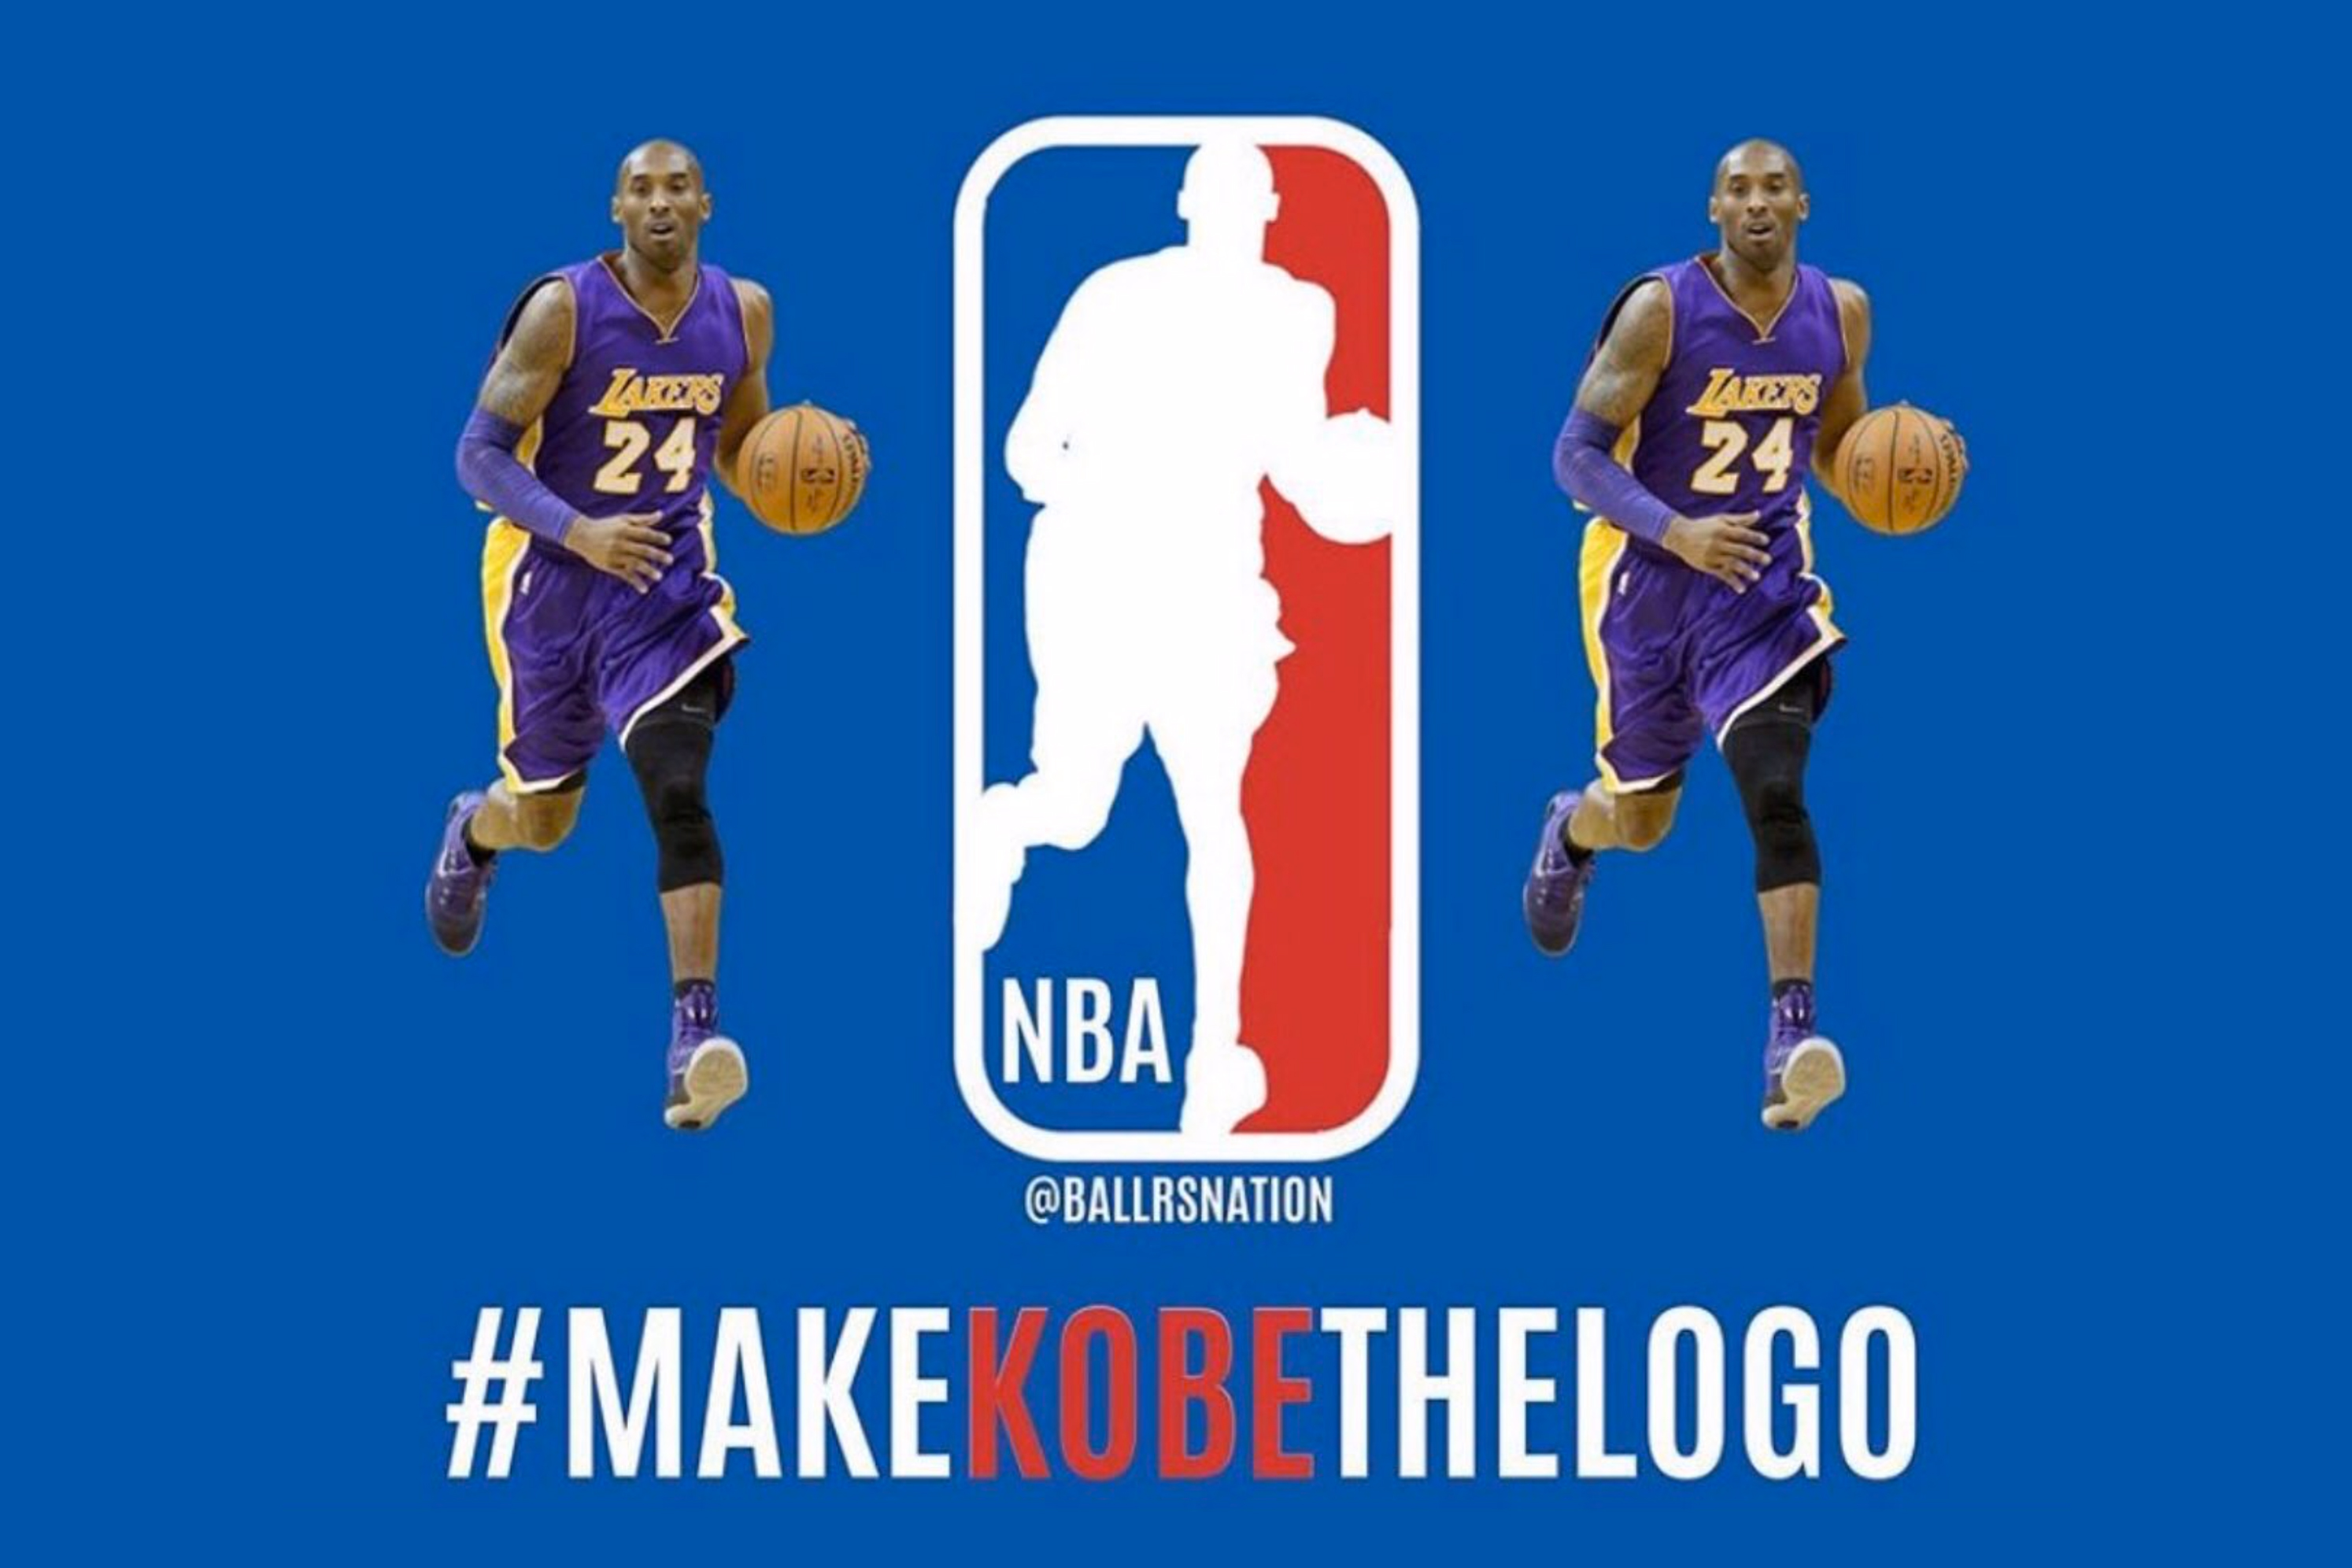 Kobe Bryant 24 8 Los Angeles LA Lakers NBA basketball logo National Basketball Association petition signatures Change.org Gigi Gianna Bryant Calabasas California helicopter crash Super Bowl marketing Jamal Crawford Larry Nance Jr.